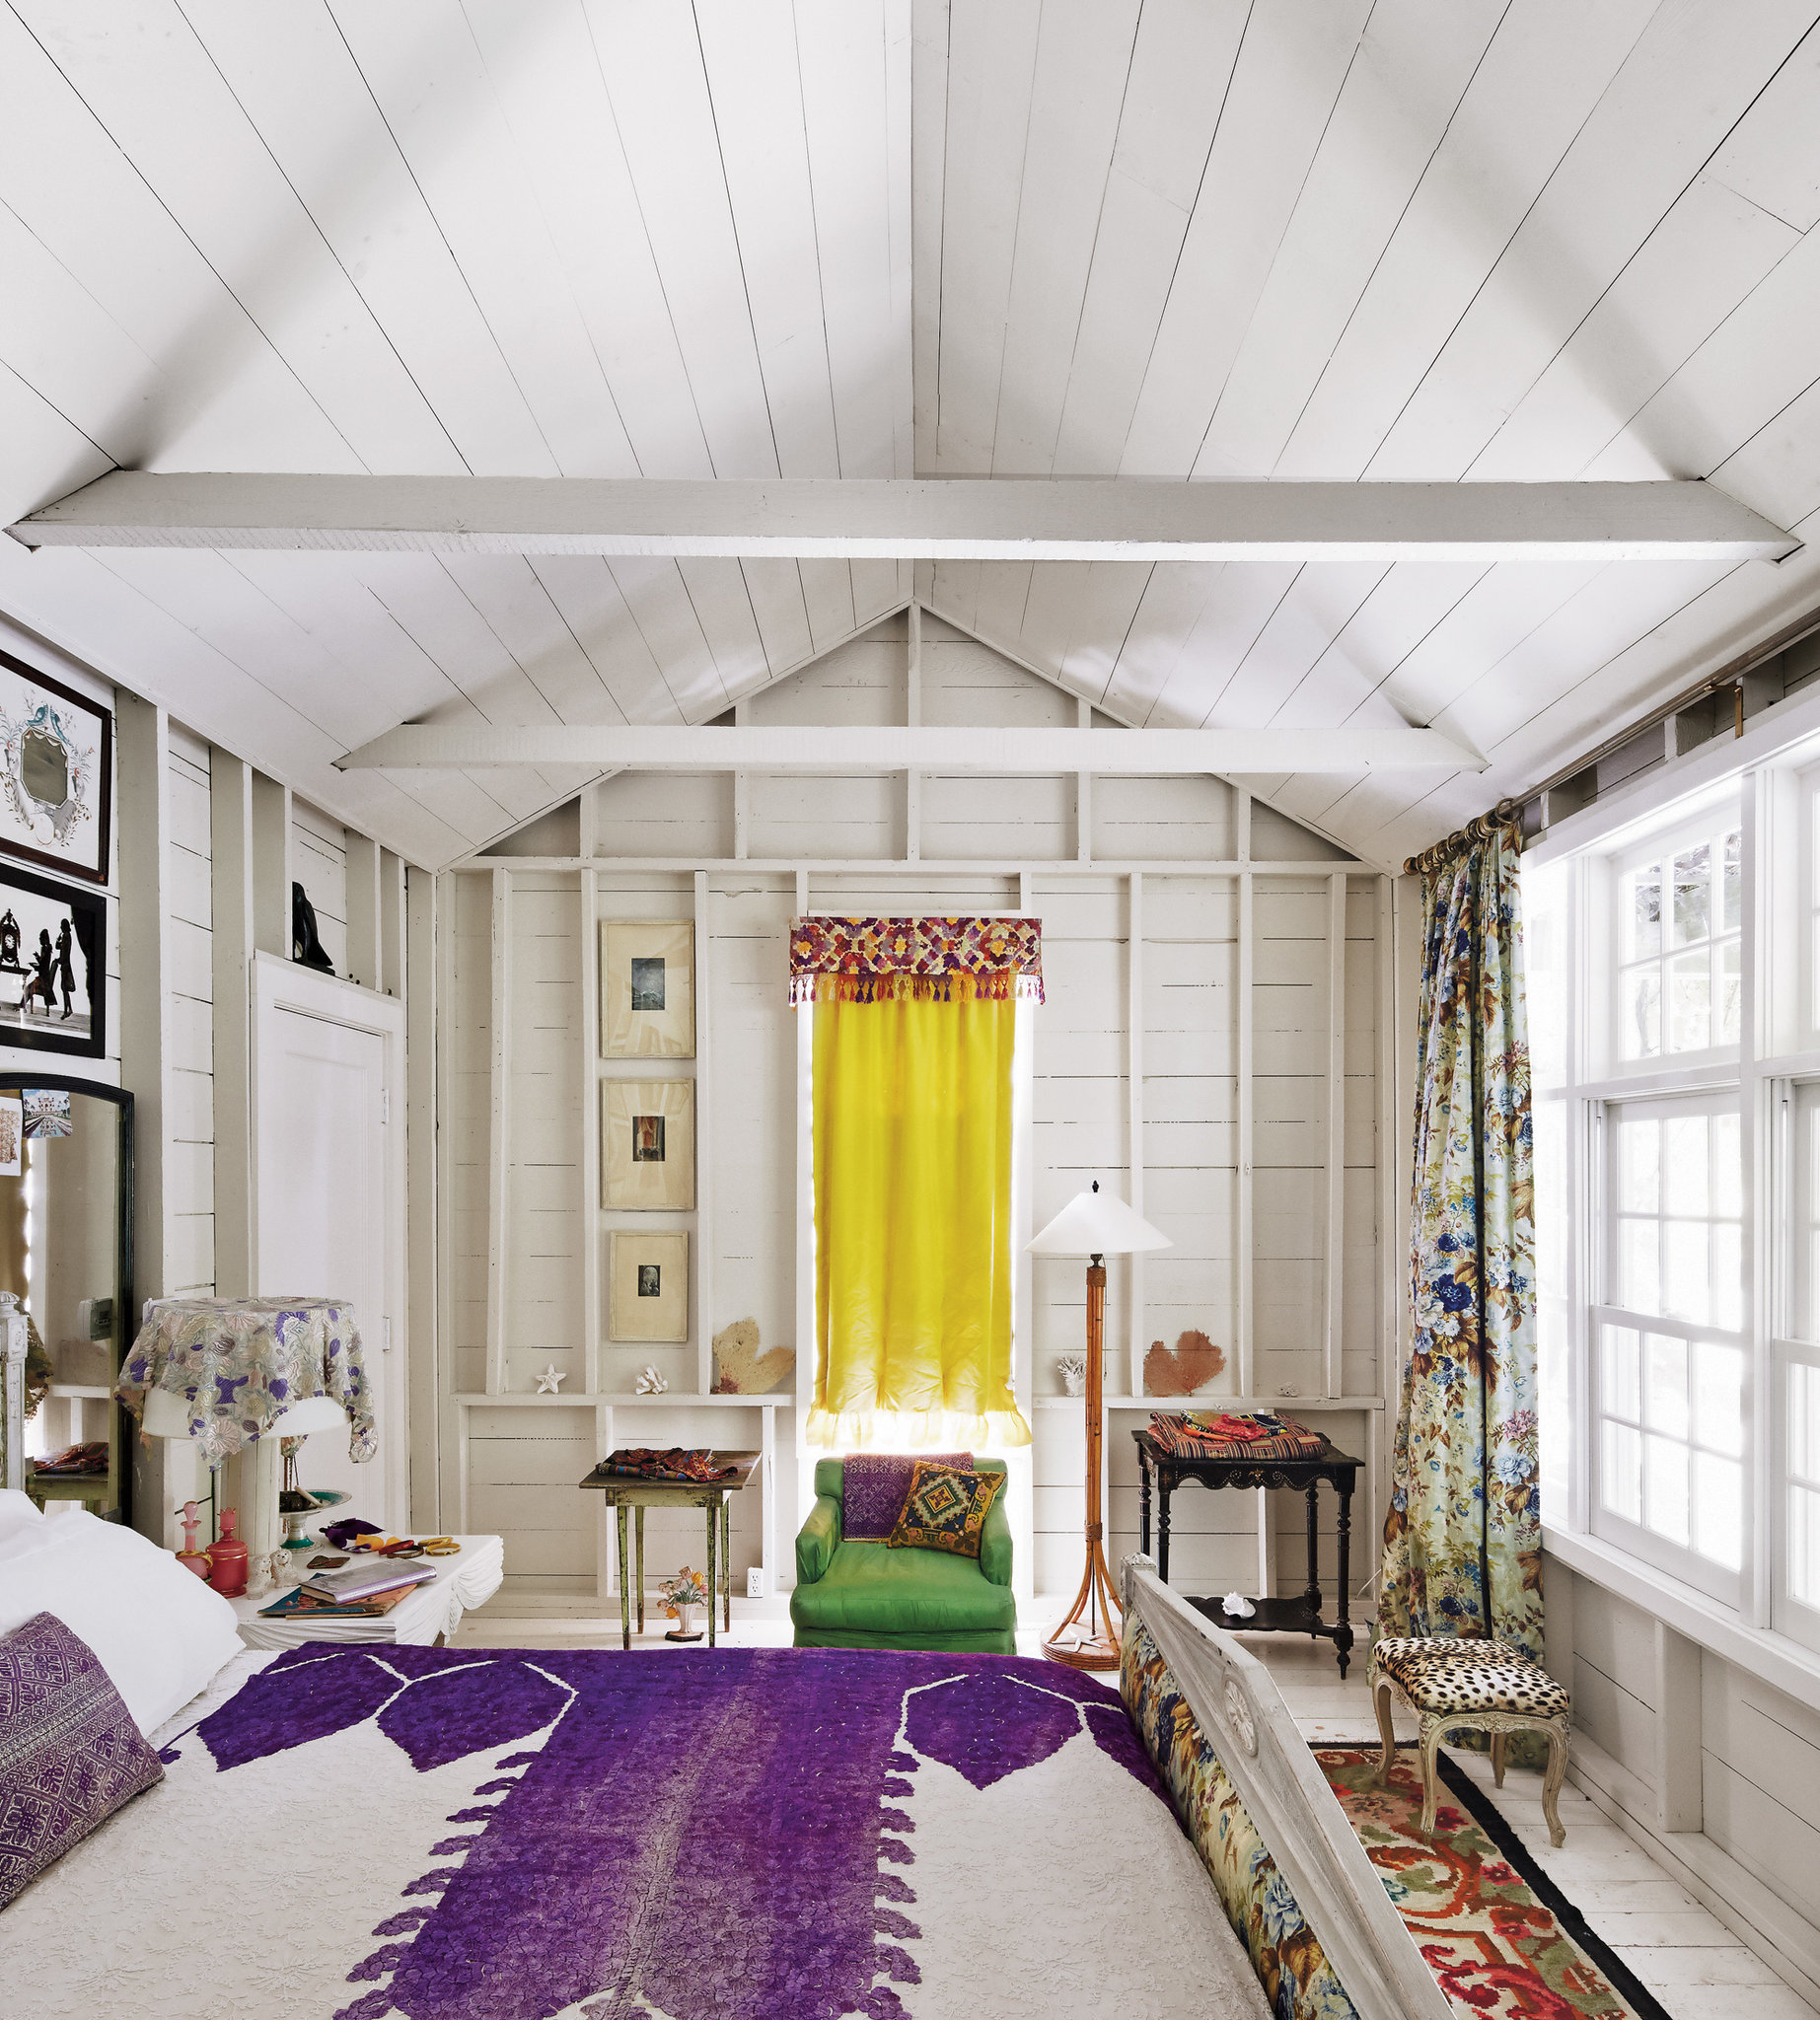 Emilie Irving house Springs East Hampton || Maison bohème + Mix and match de tissus etniques